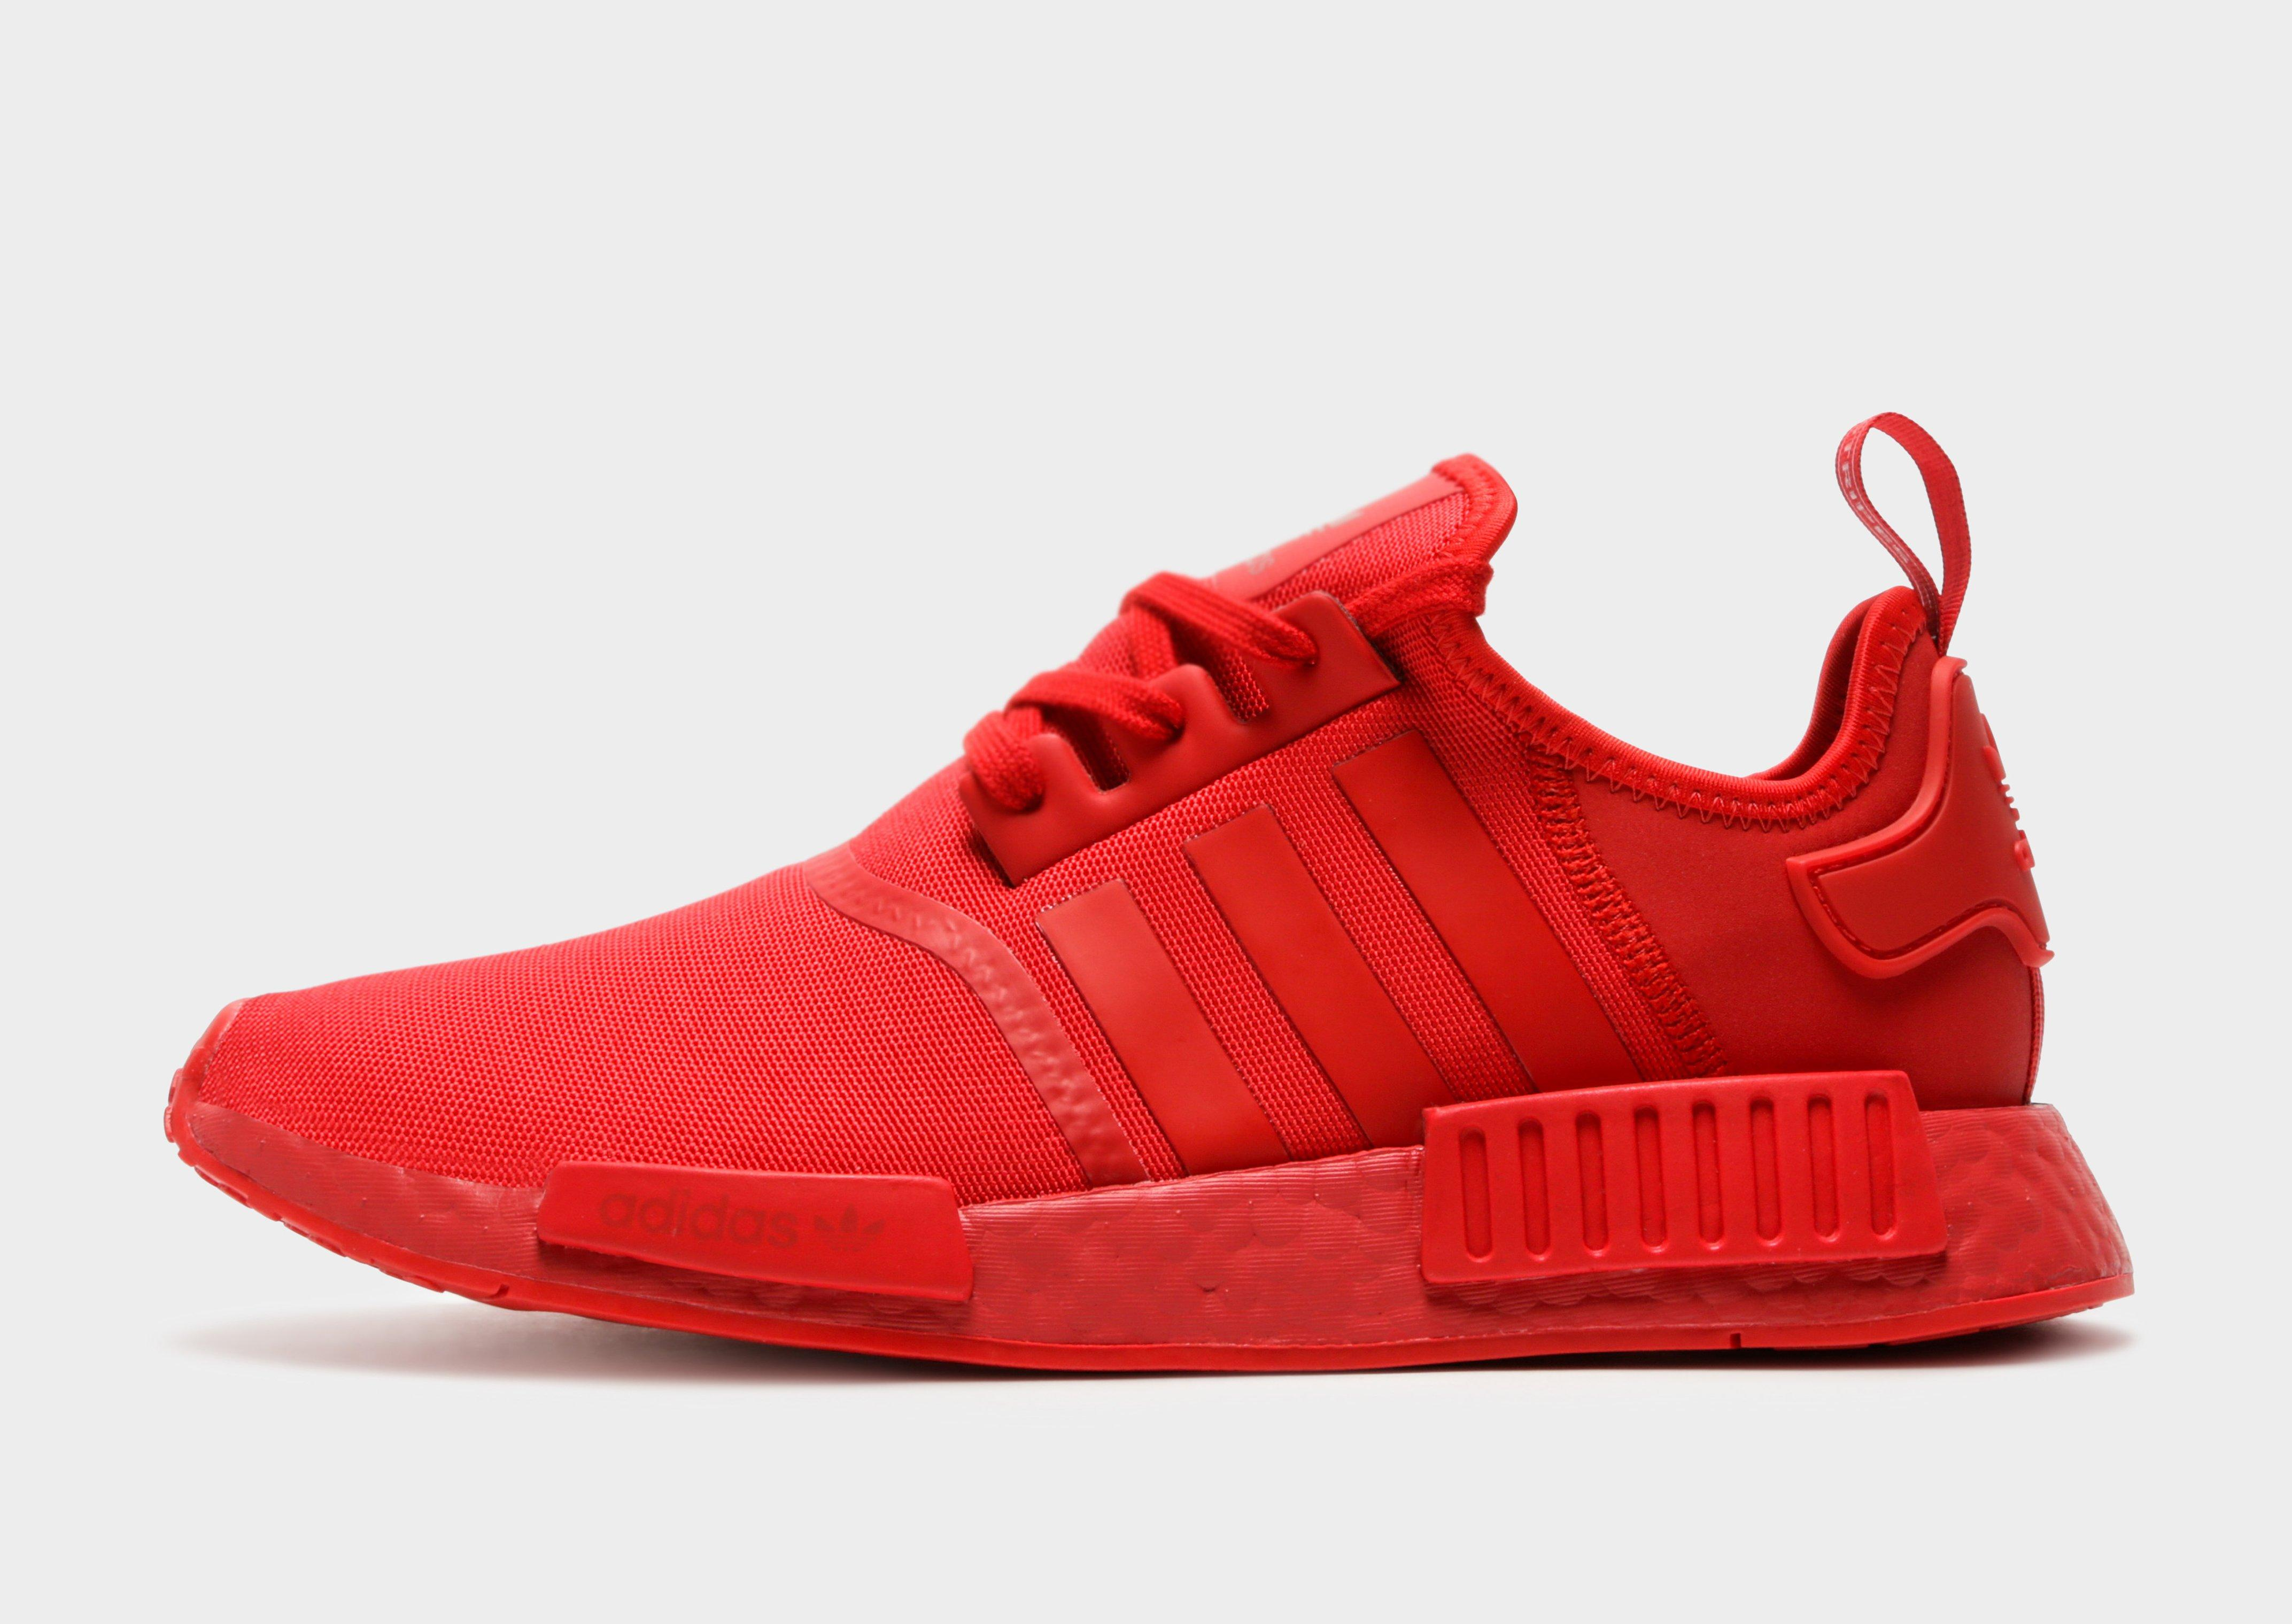 all red nmds adidas cheap online